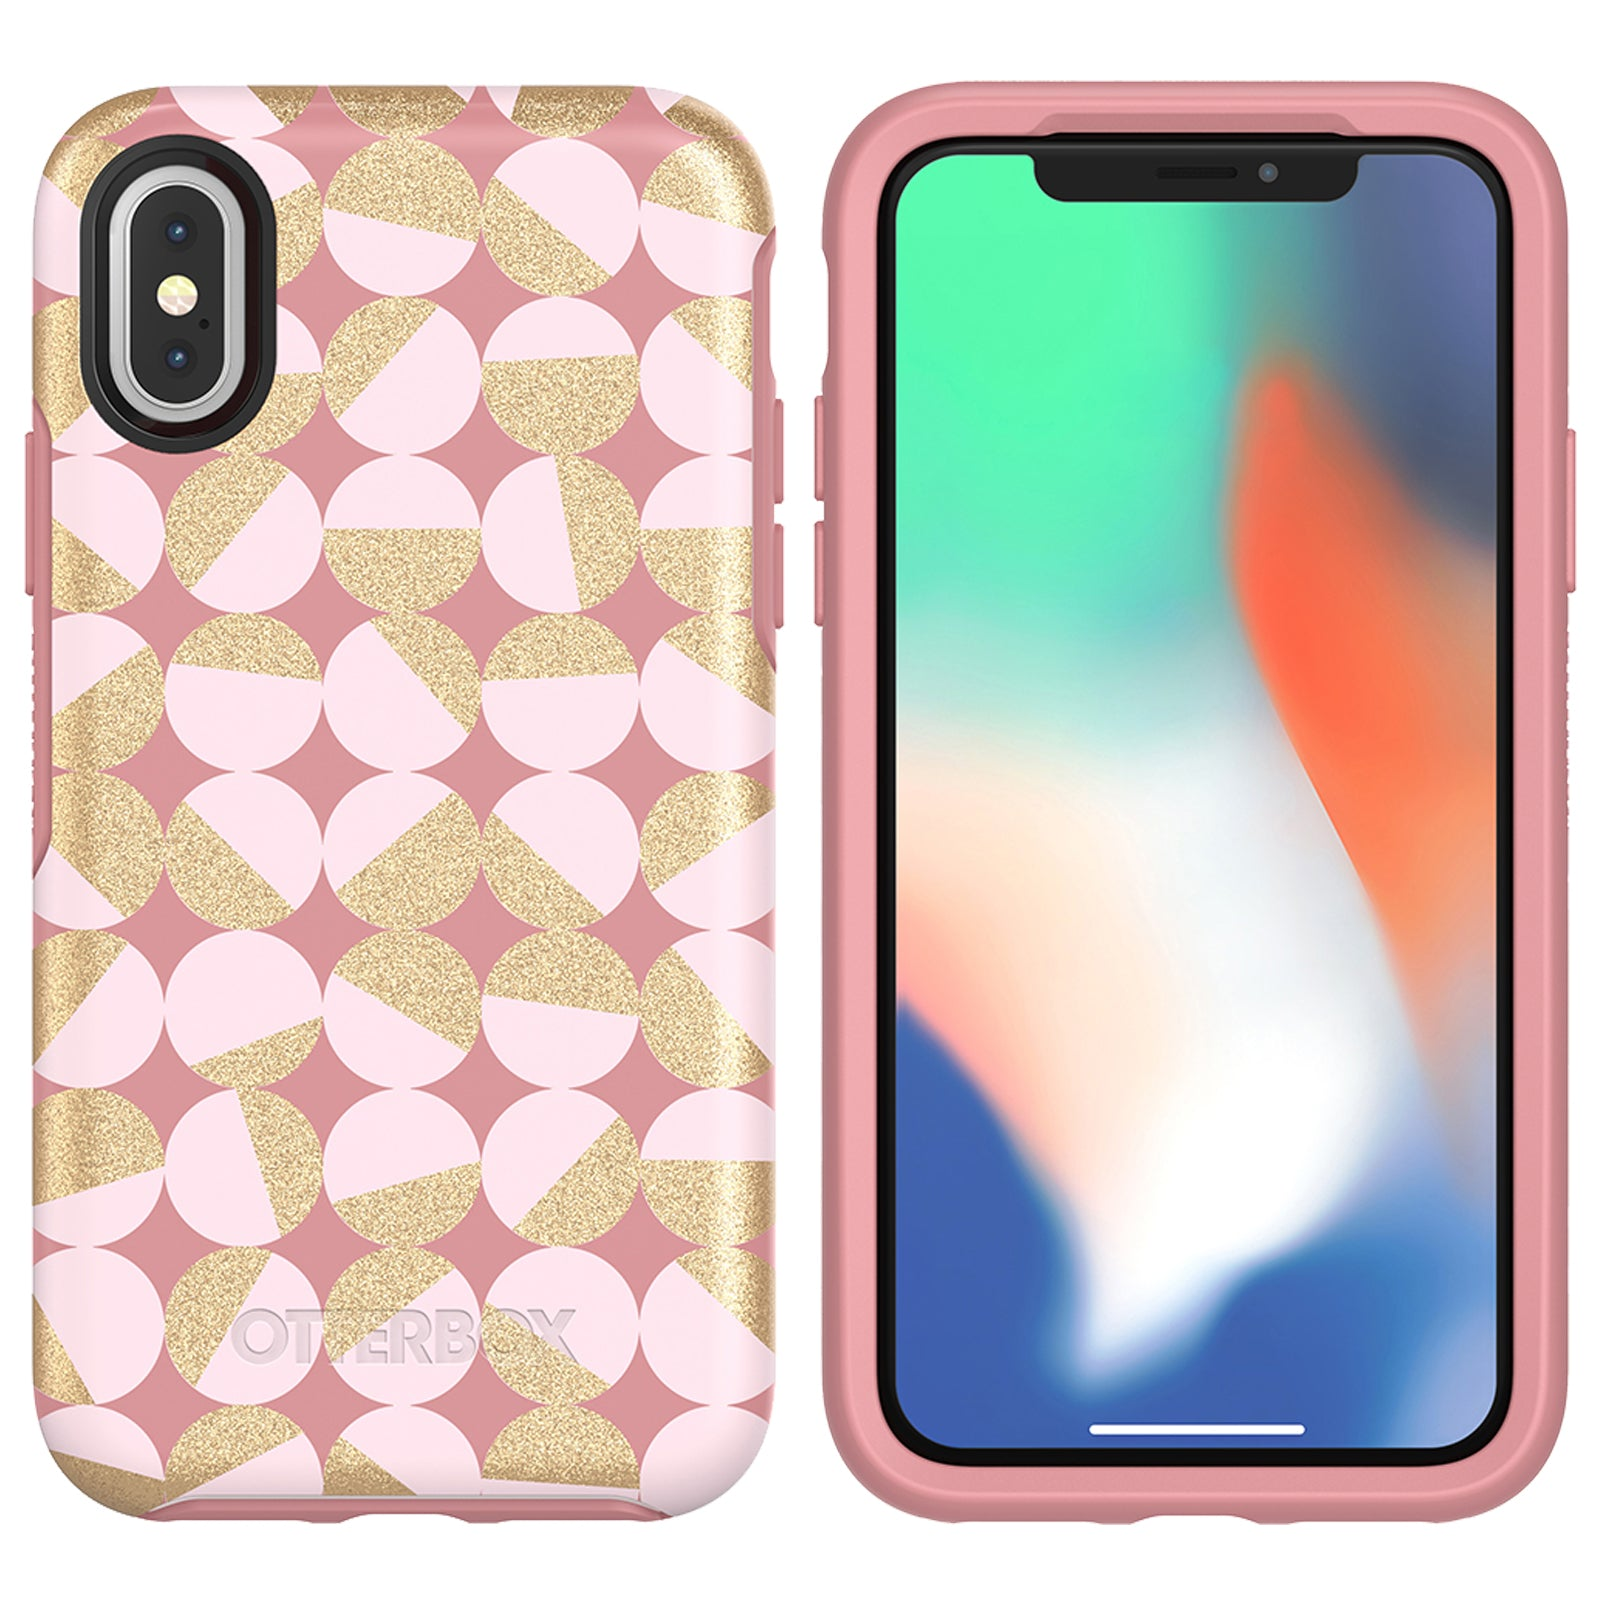 outlet store b05cf c7d9e OtterBox Symmetry case for iPhone X - Mod About You